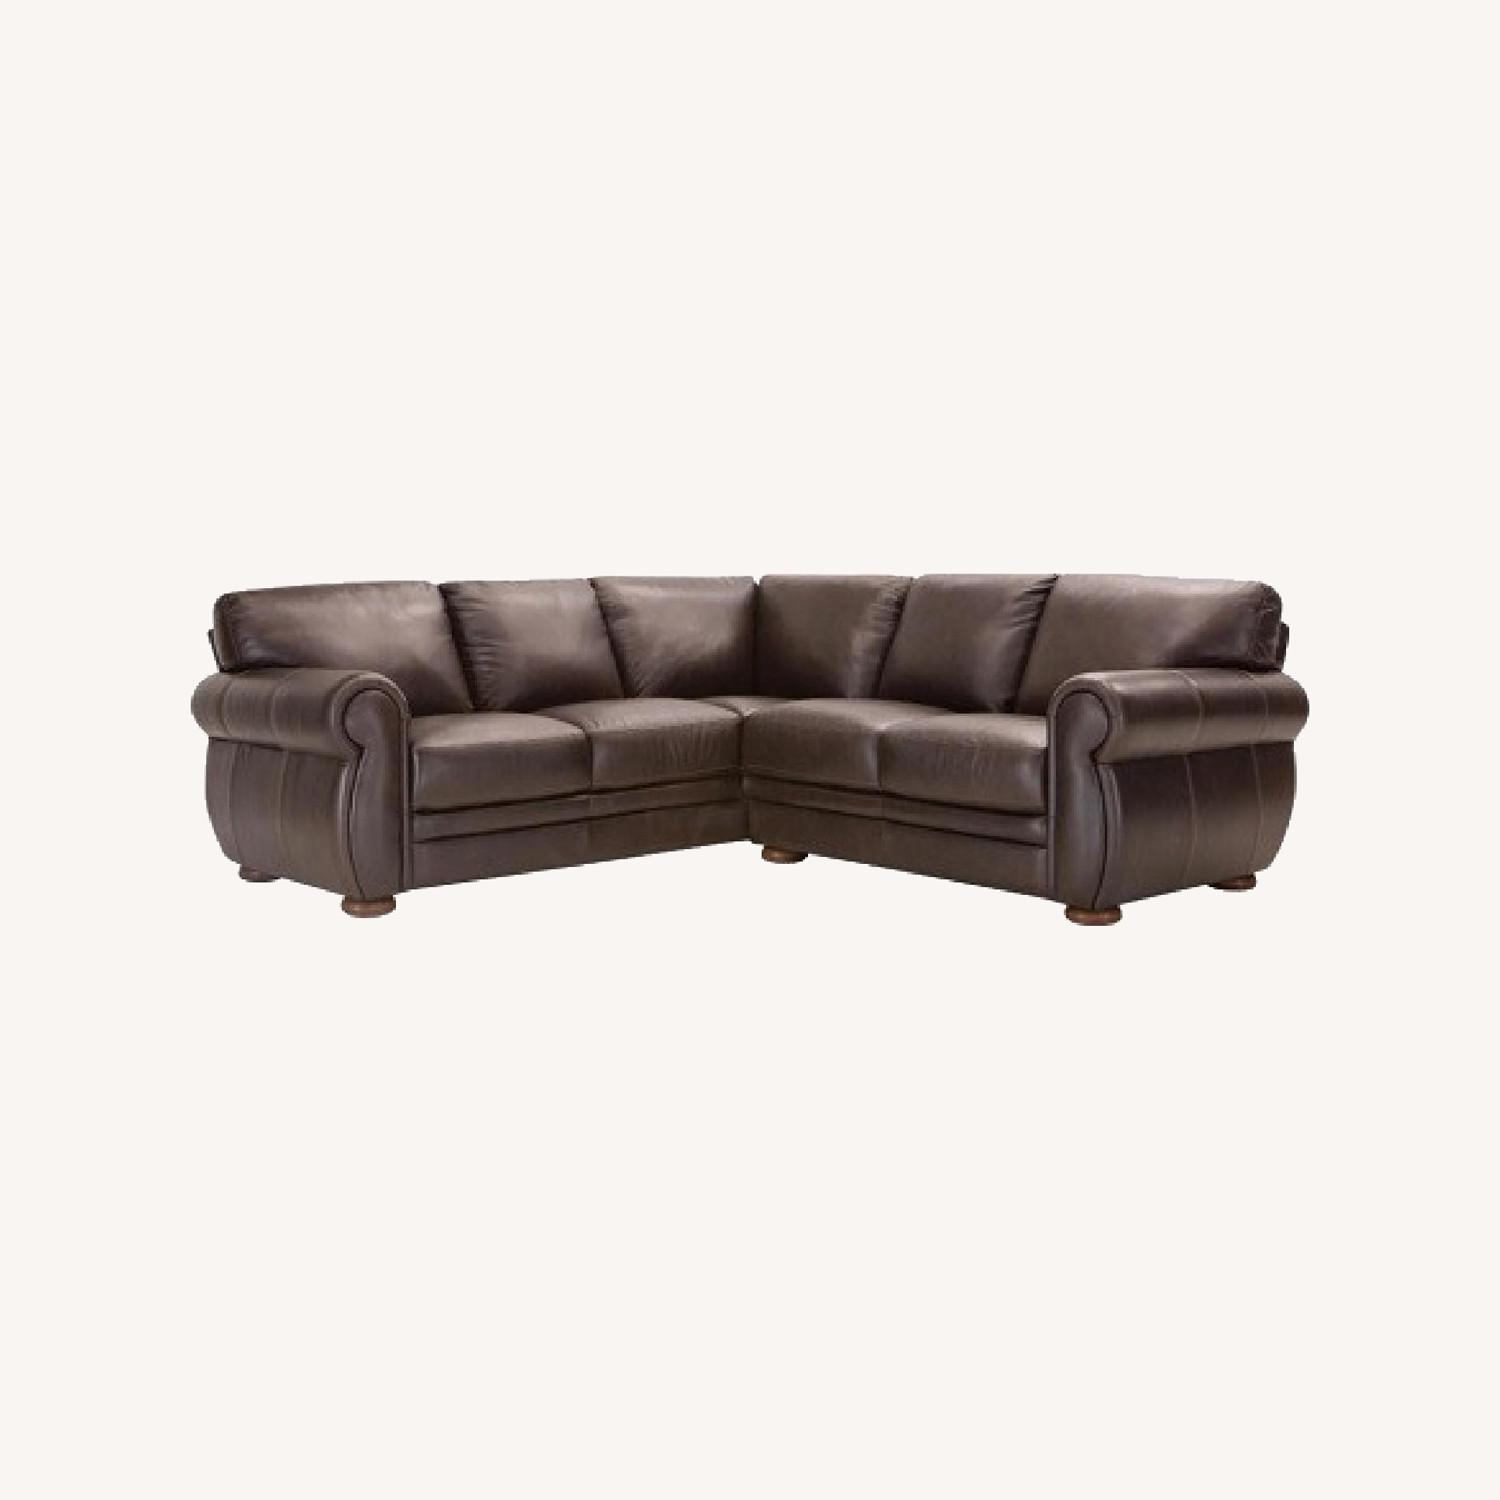 Raymour Flanigan Leather Sectional Sofa Aptdeco